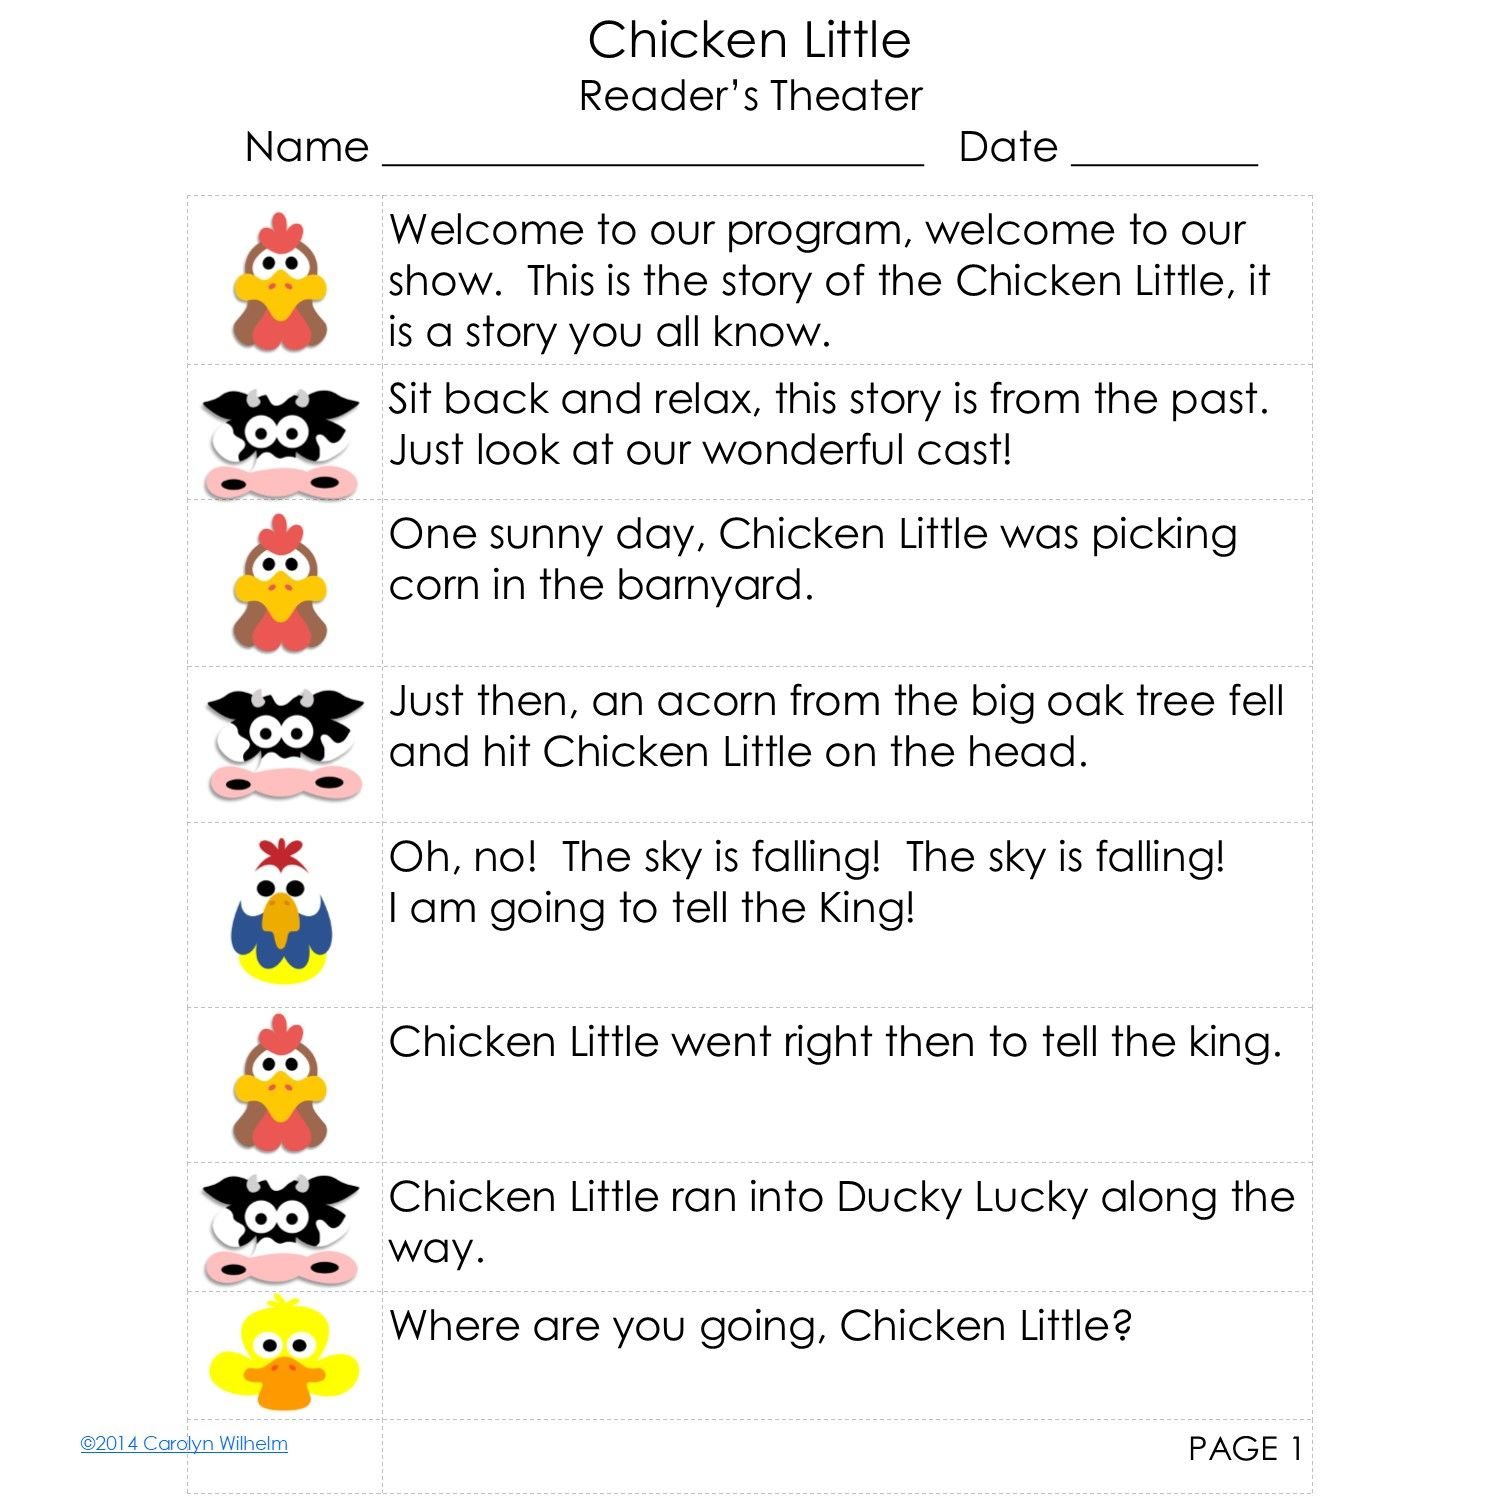 Gentle Version Of Chicken Little Reader S Theater Script Free From Wise Owl Factory Readers Theater Scripts Readers Theater Social Scripts [ 1500 x 1500 Pixel ]